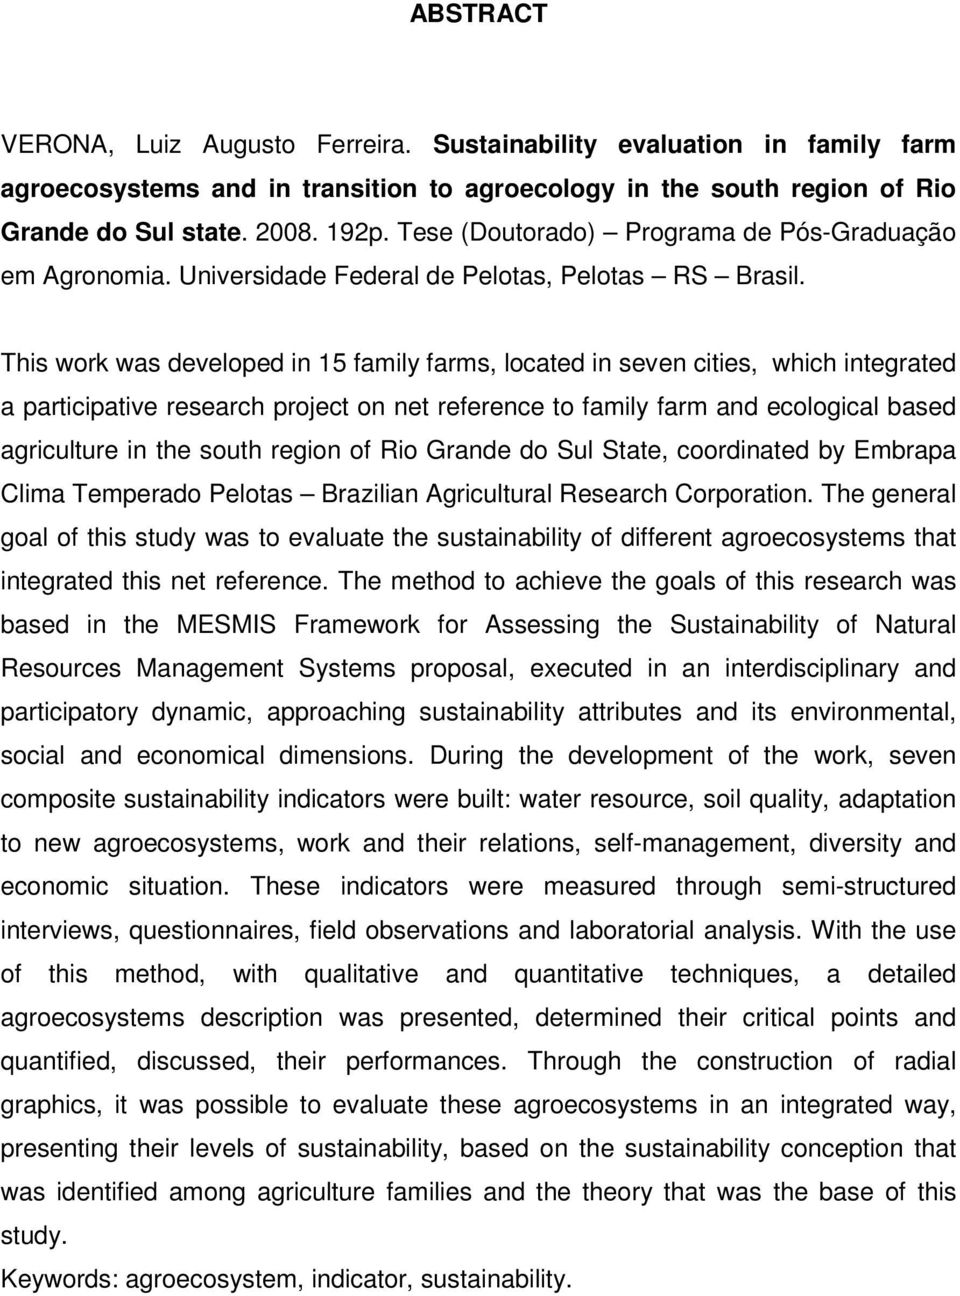 This work was developed in 15 family farms, located in seven cities, which integrated a participative research project on net reference to family farm and ecological based agriculture in the south